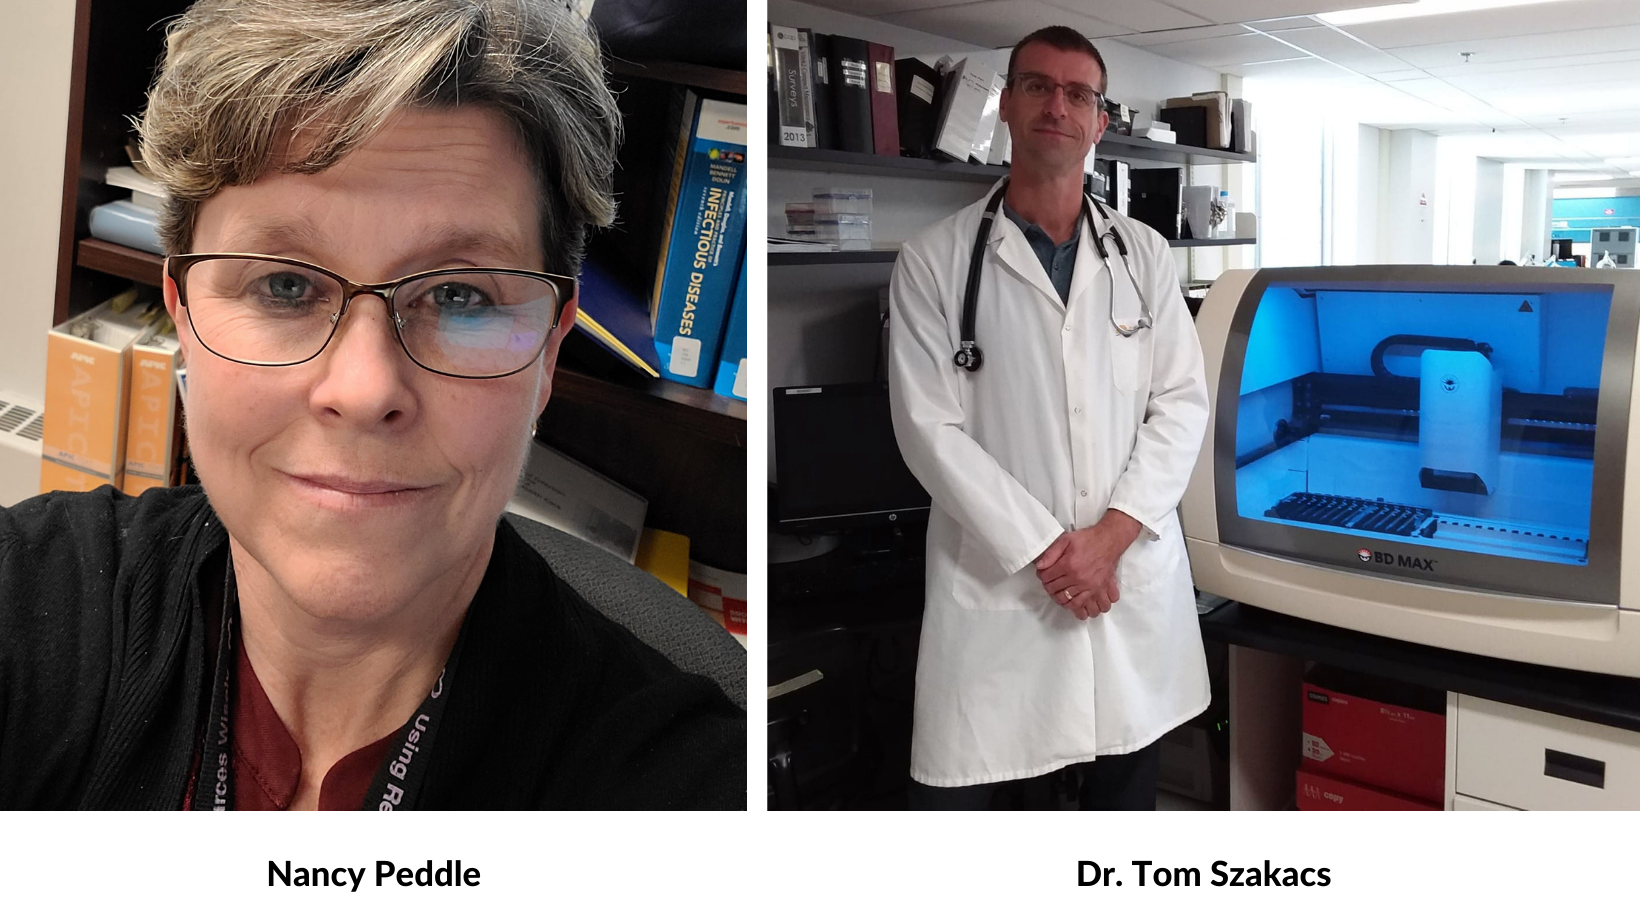 Nancy Peddle and Dr. Tom Szakacs